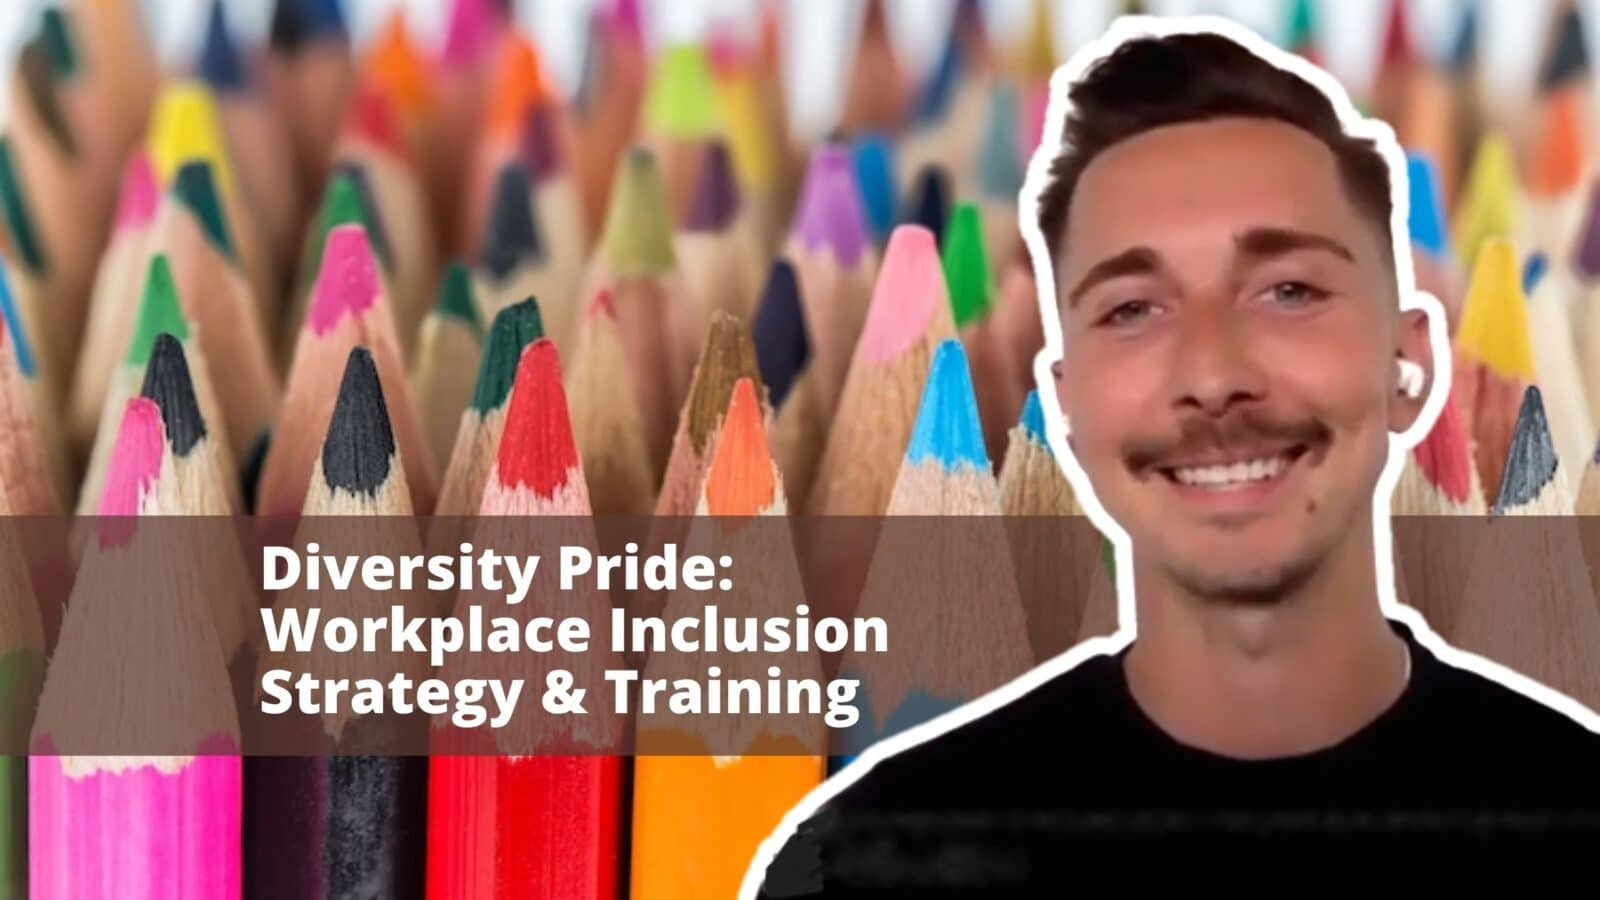 Martin Kmiecik Diversity Pride Workplace Inclusion Strategy & Training Out Gay business owner lgbtq entrepreneur lgbt professional outburo workplace equality welcoming belonging culture